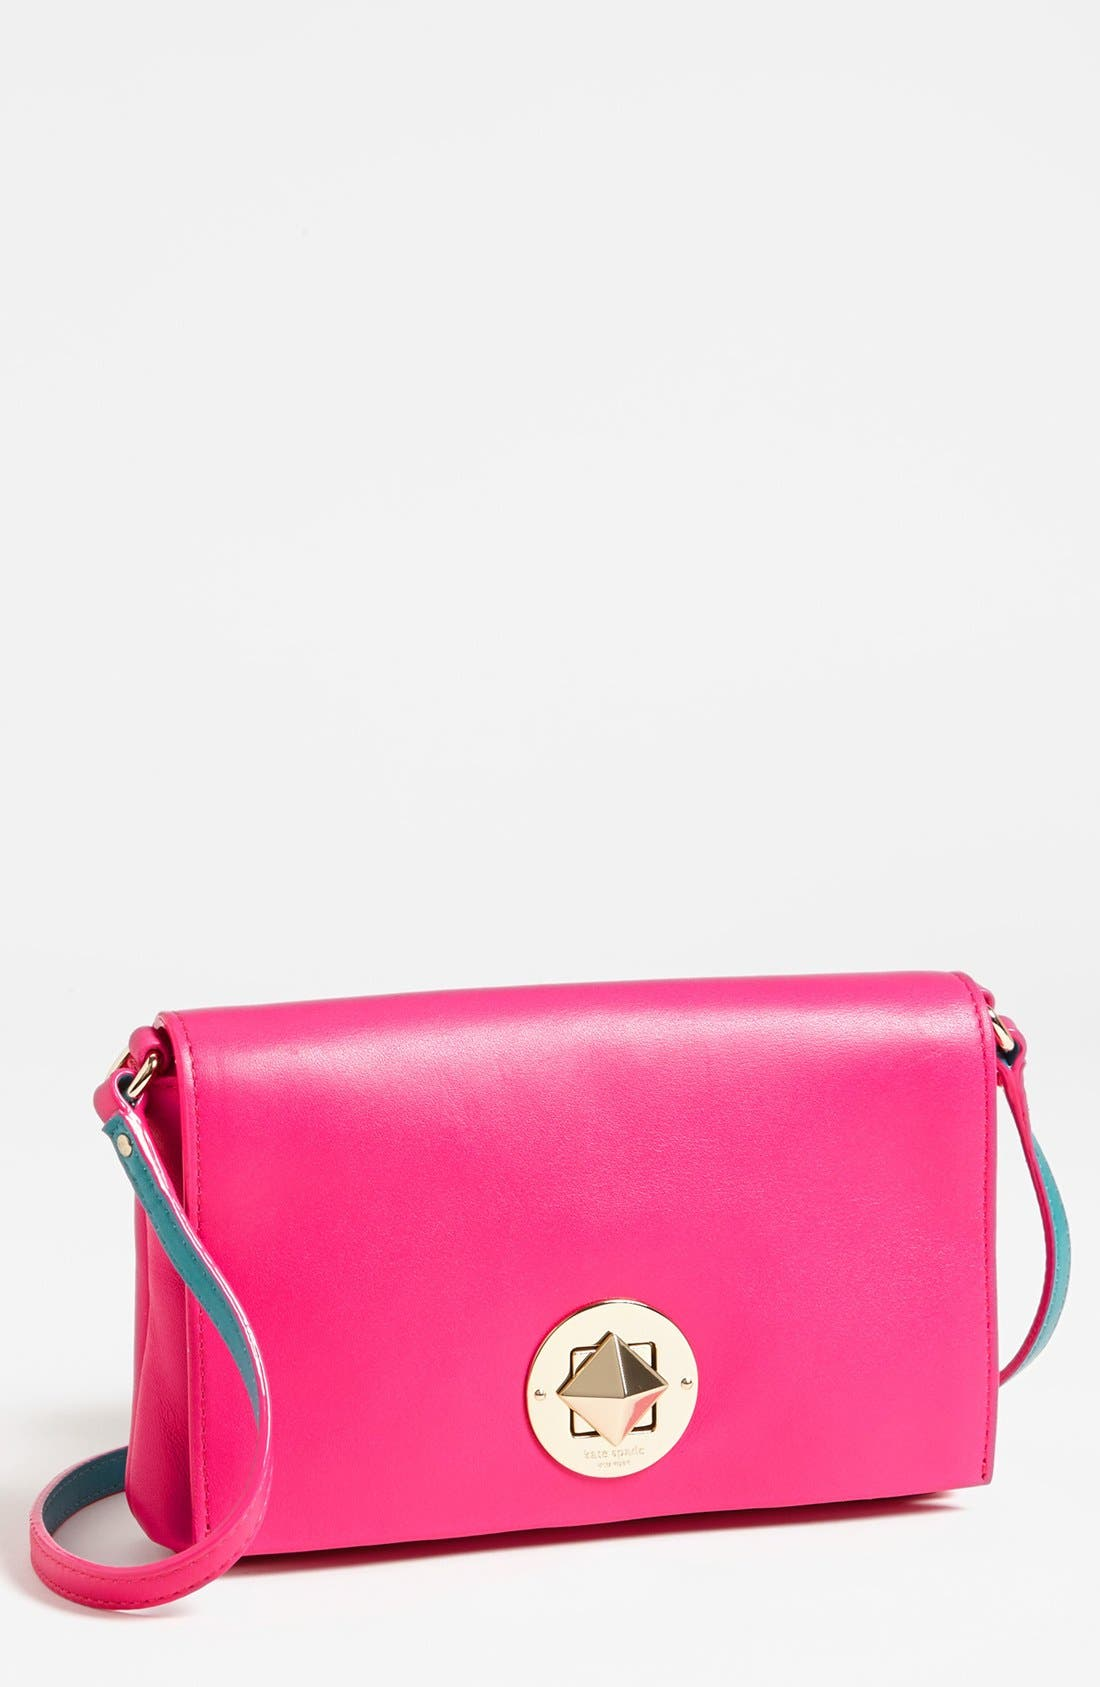 Alternate Image 1 Selected - kate spade new york 'brightspot avenue - sally' crossbody bag